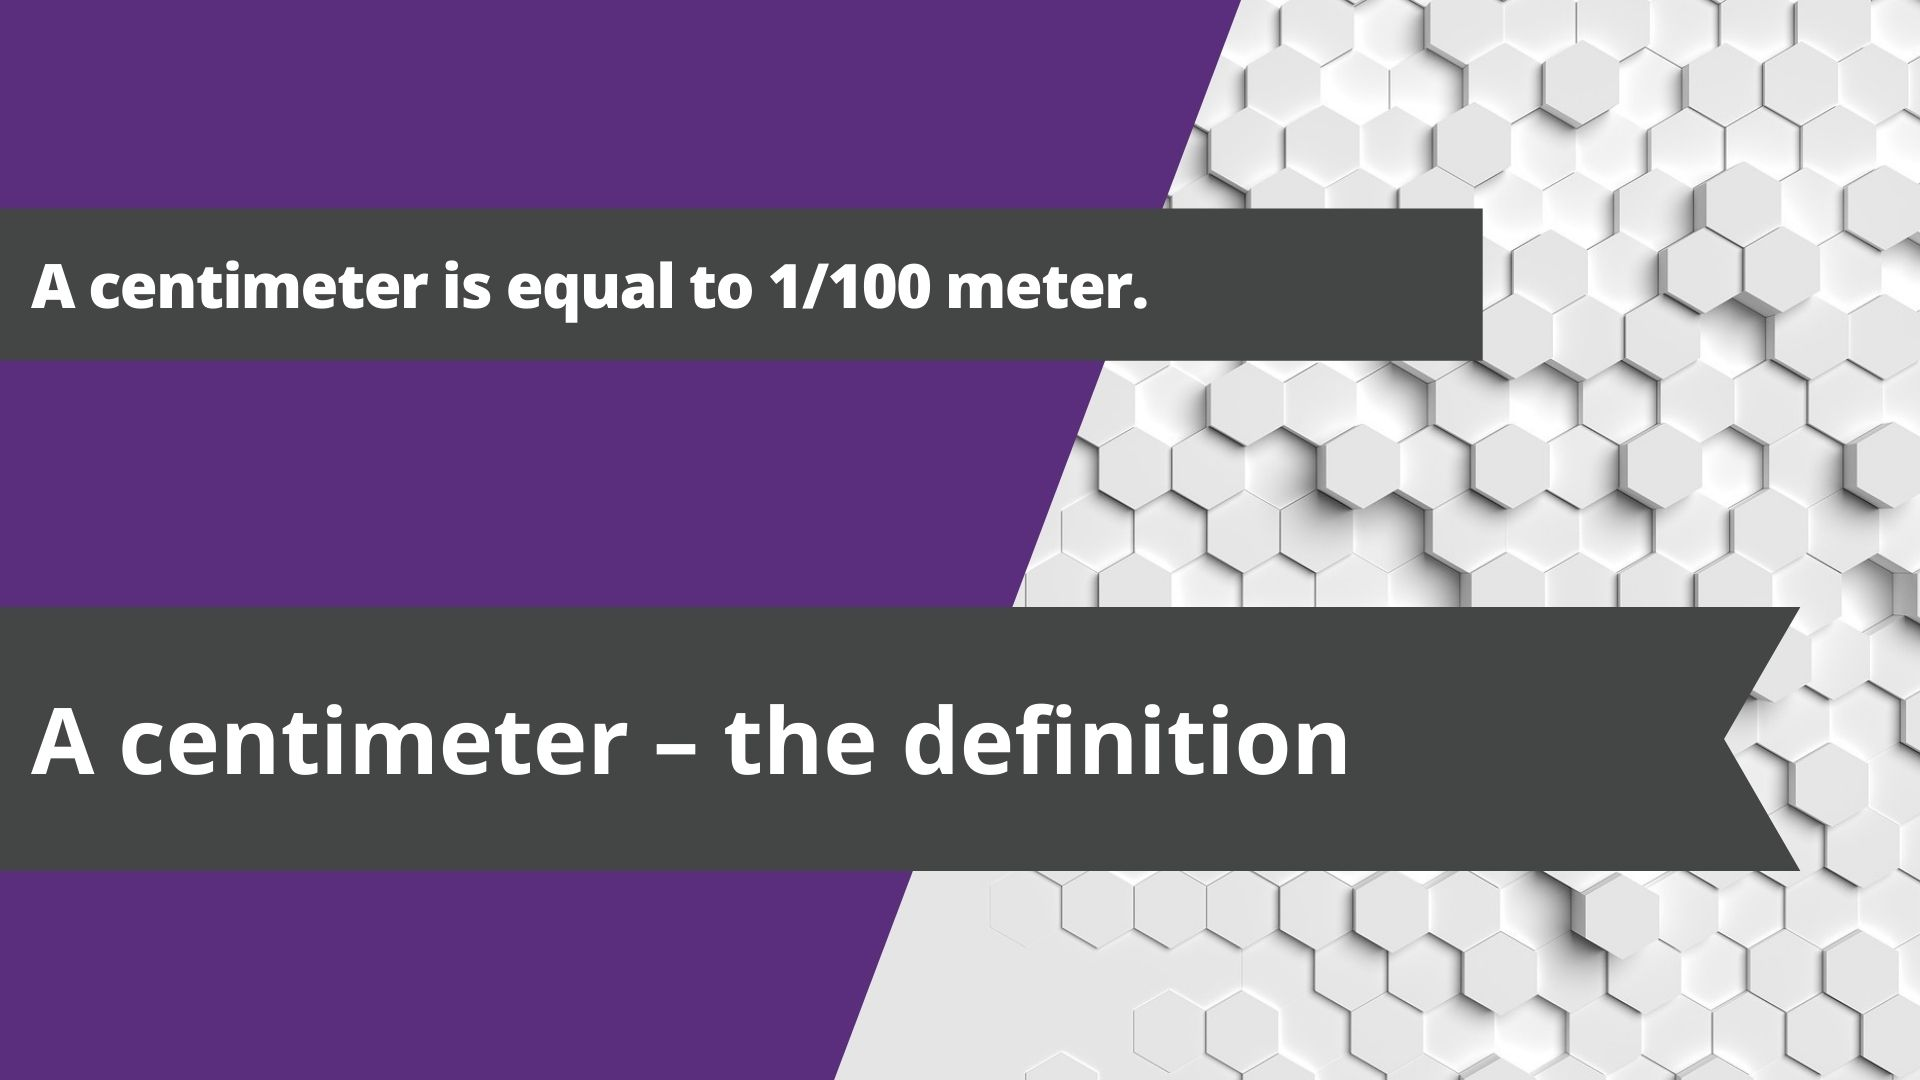 A centimeter – the definition